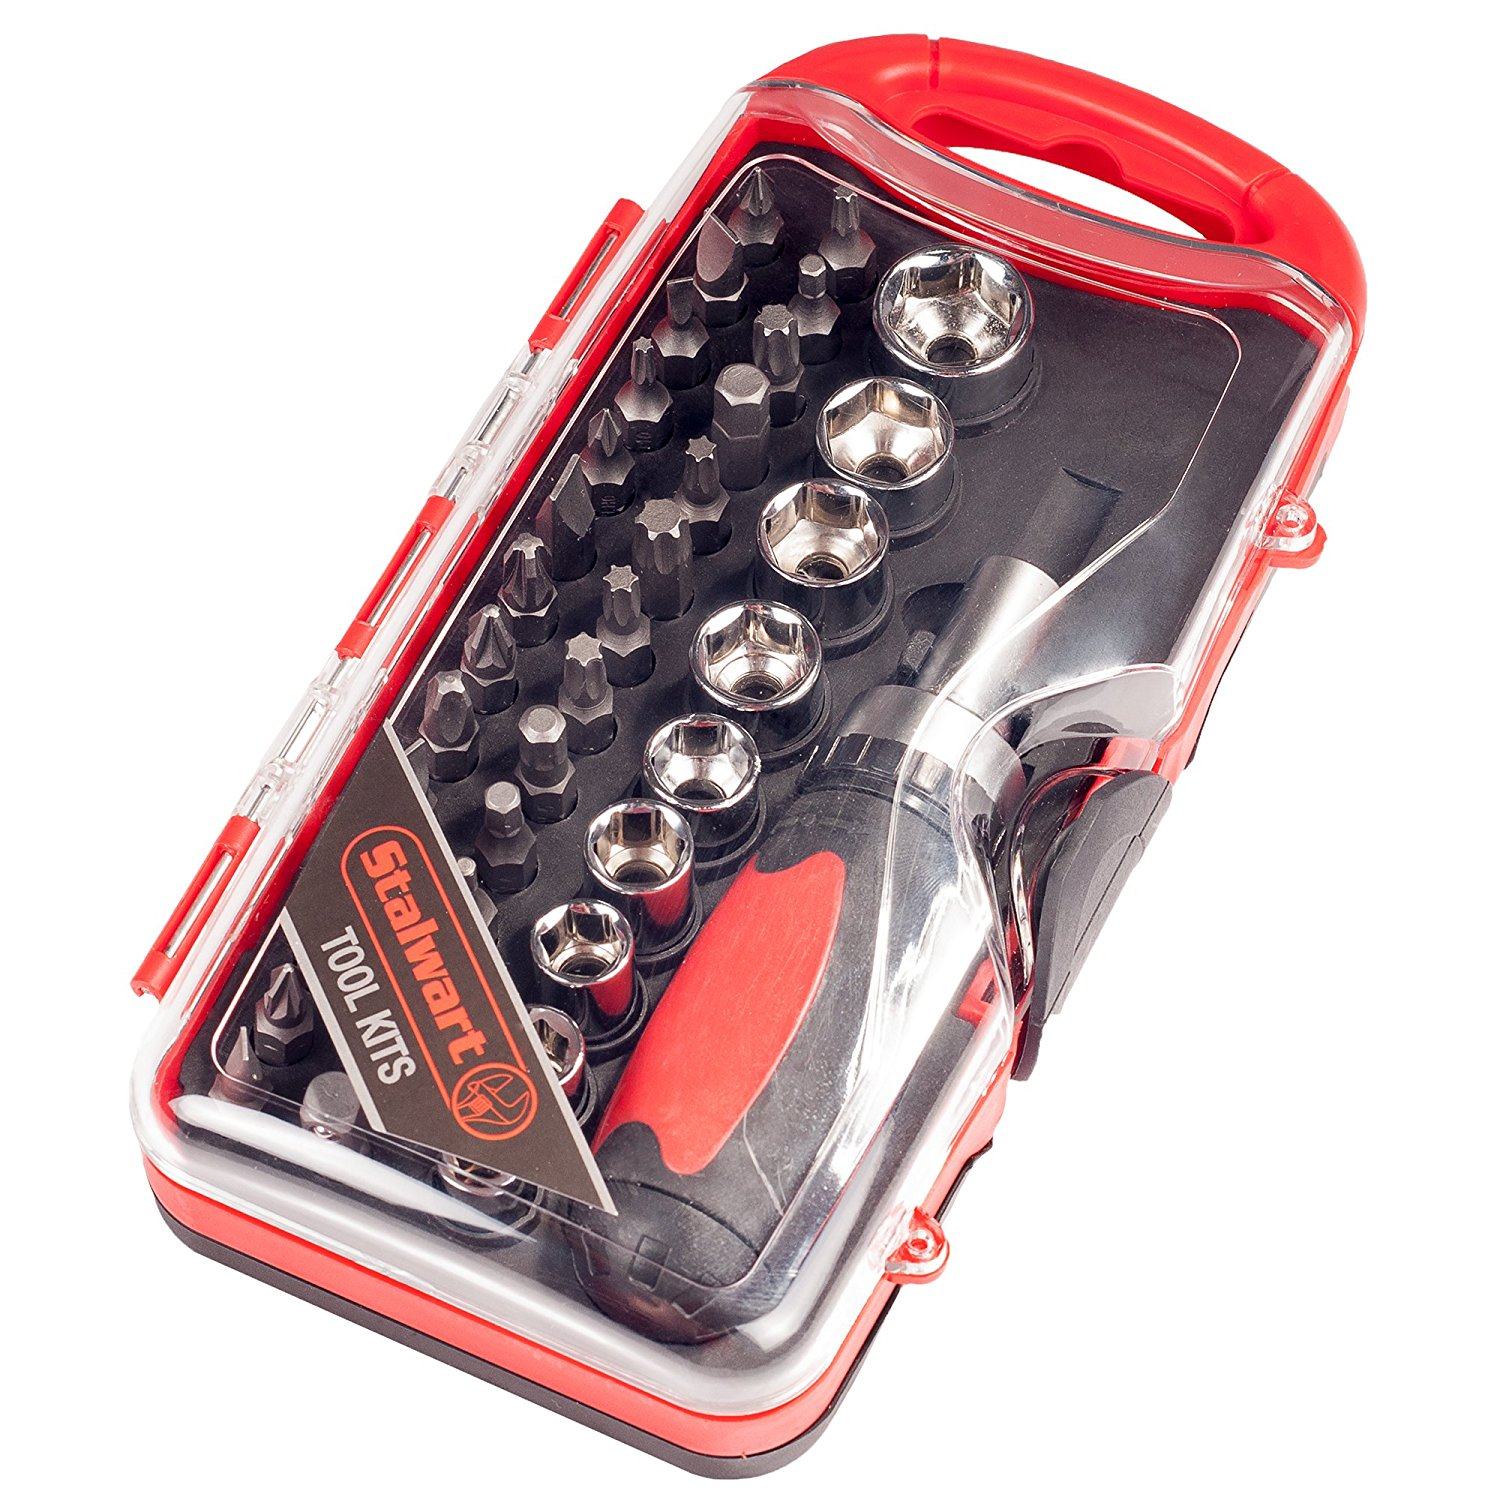 99733babf Get Quotations · Ratcheting Screwdriver with 38 Piece Bit and Socket Set -  Stubby Handle Multitool with Metric and